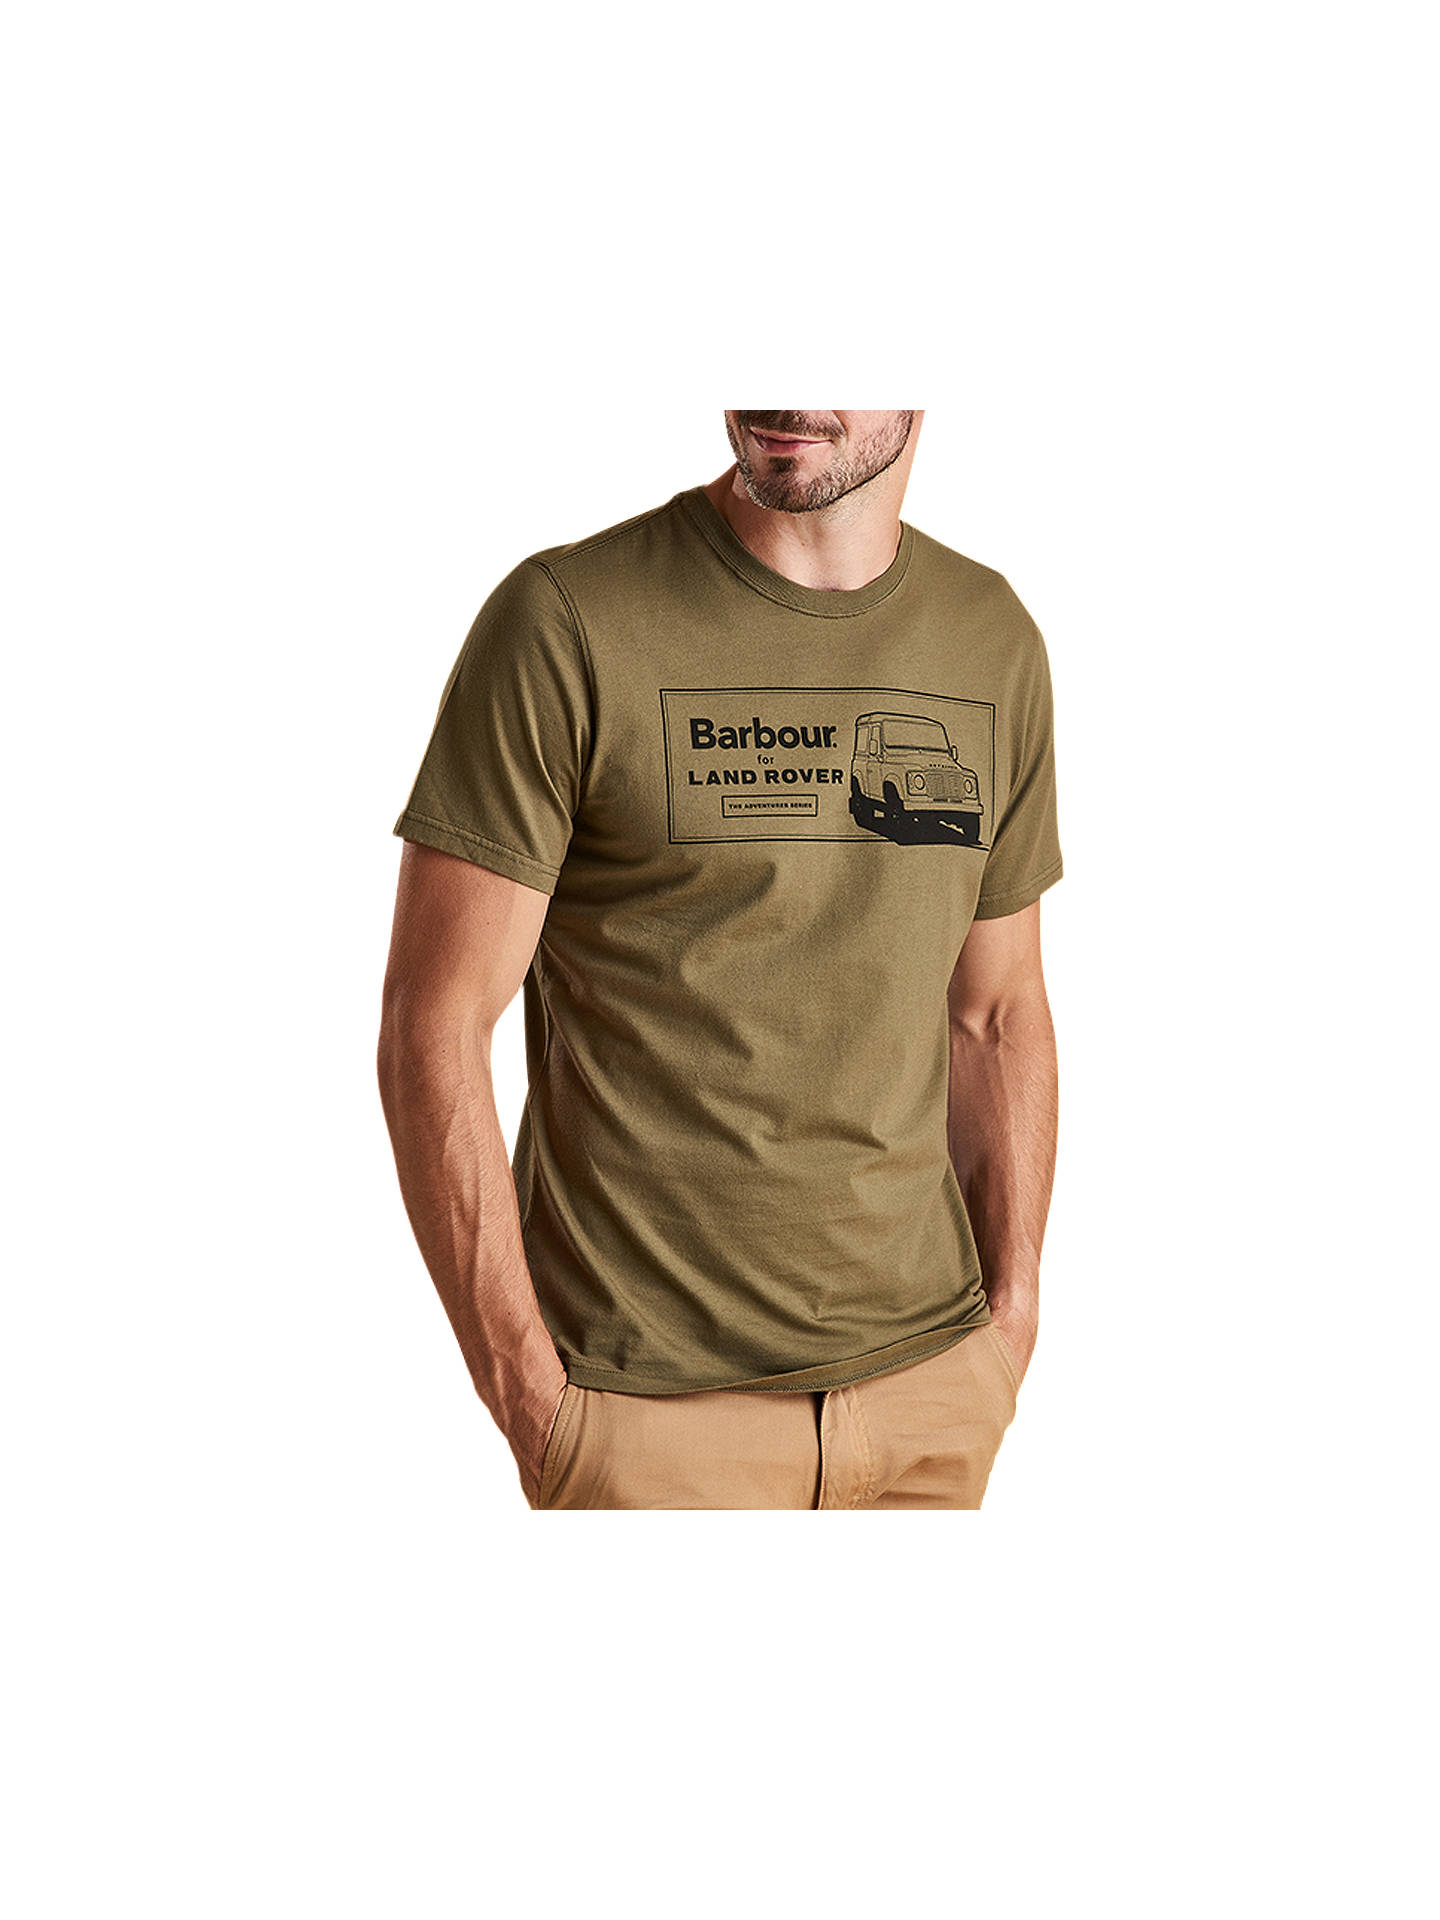 Buy Barbour Land Rover Defender Short Sleeve Logo T-Shirt, Green, S Online at johnlewis.com